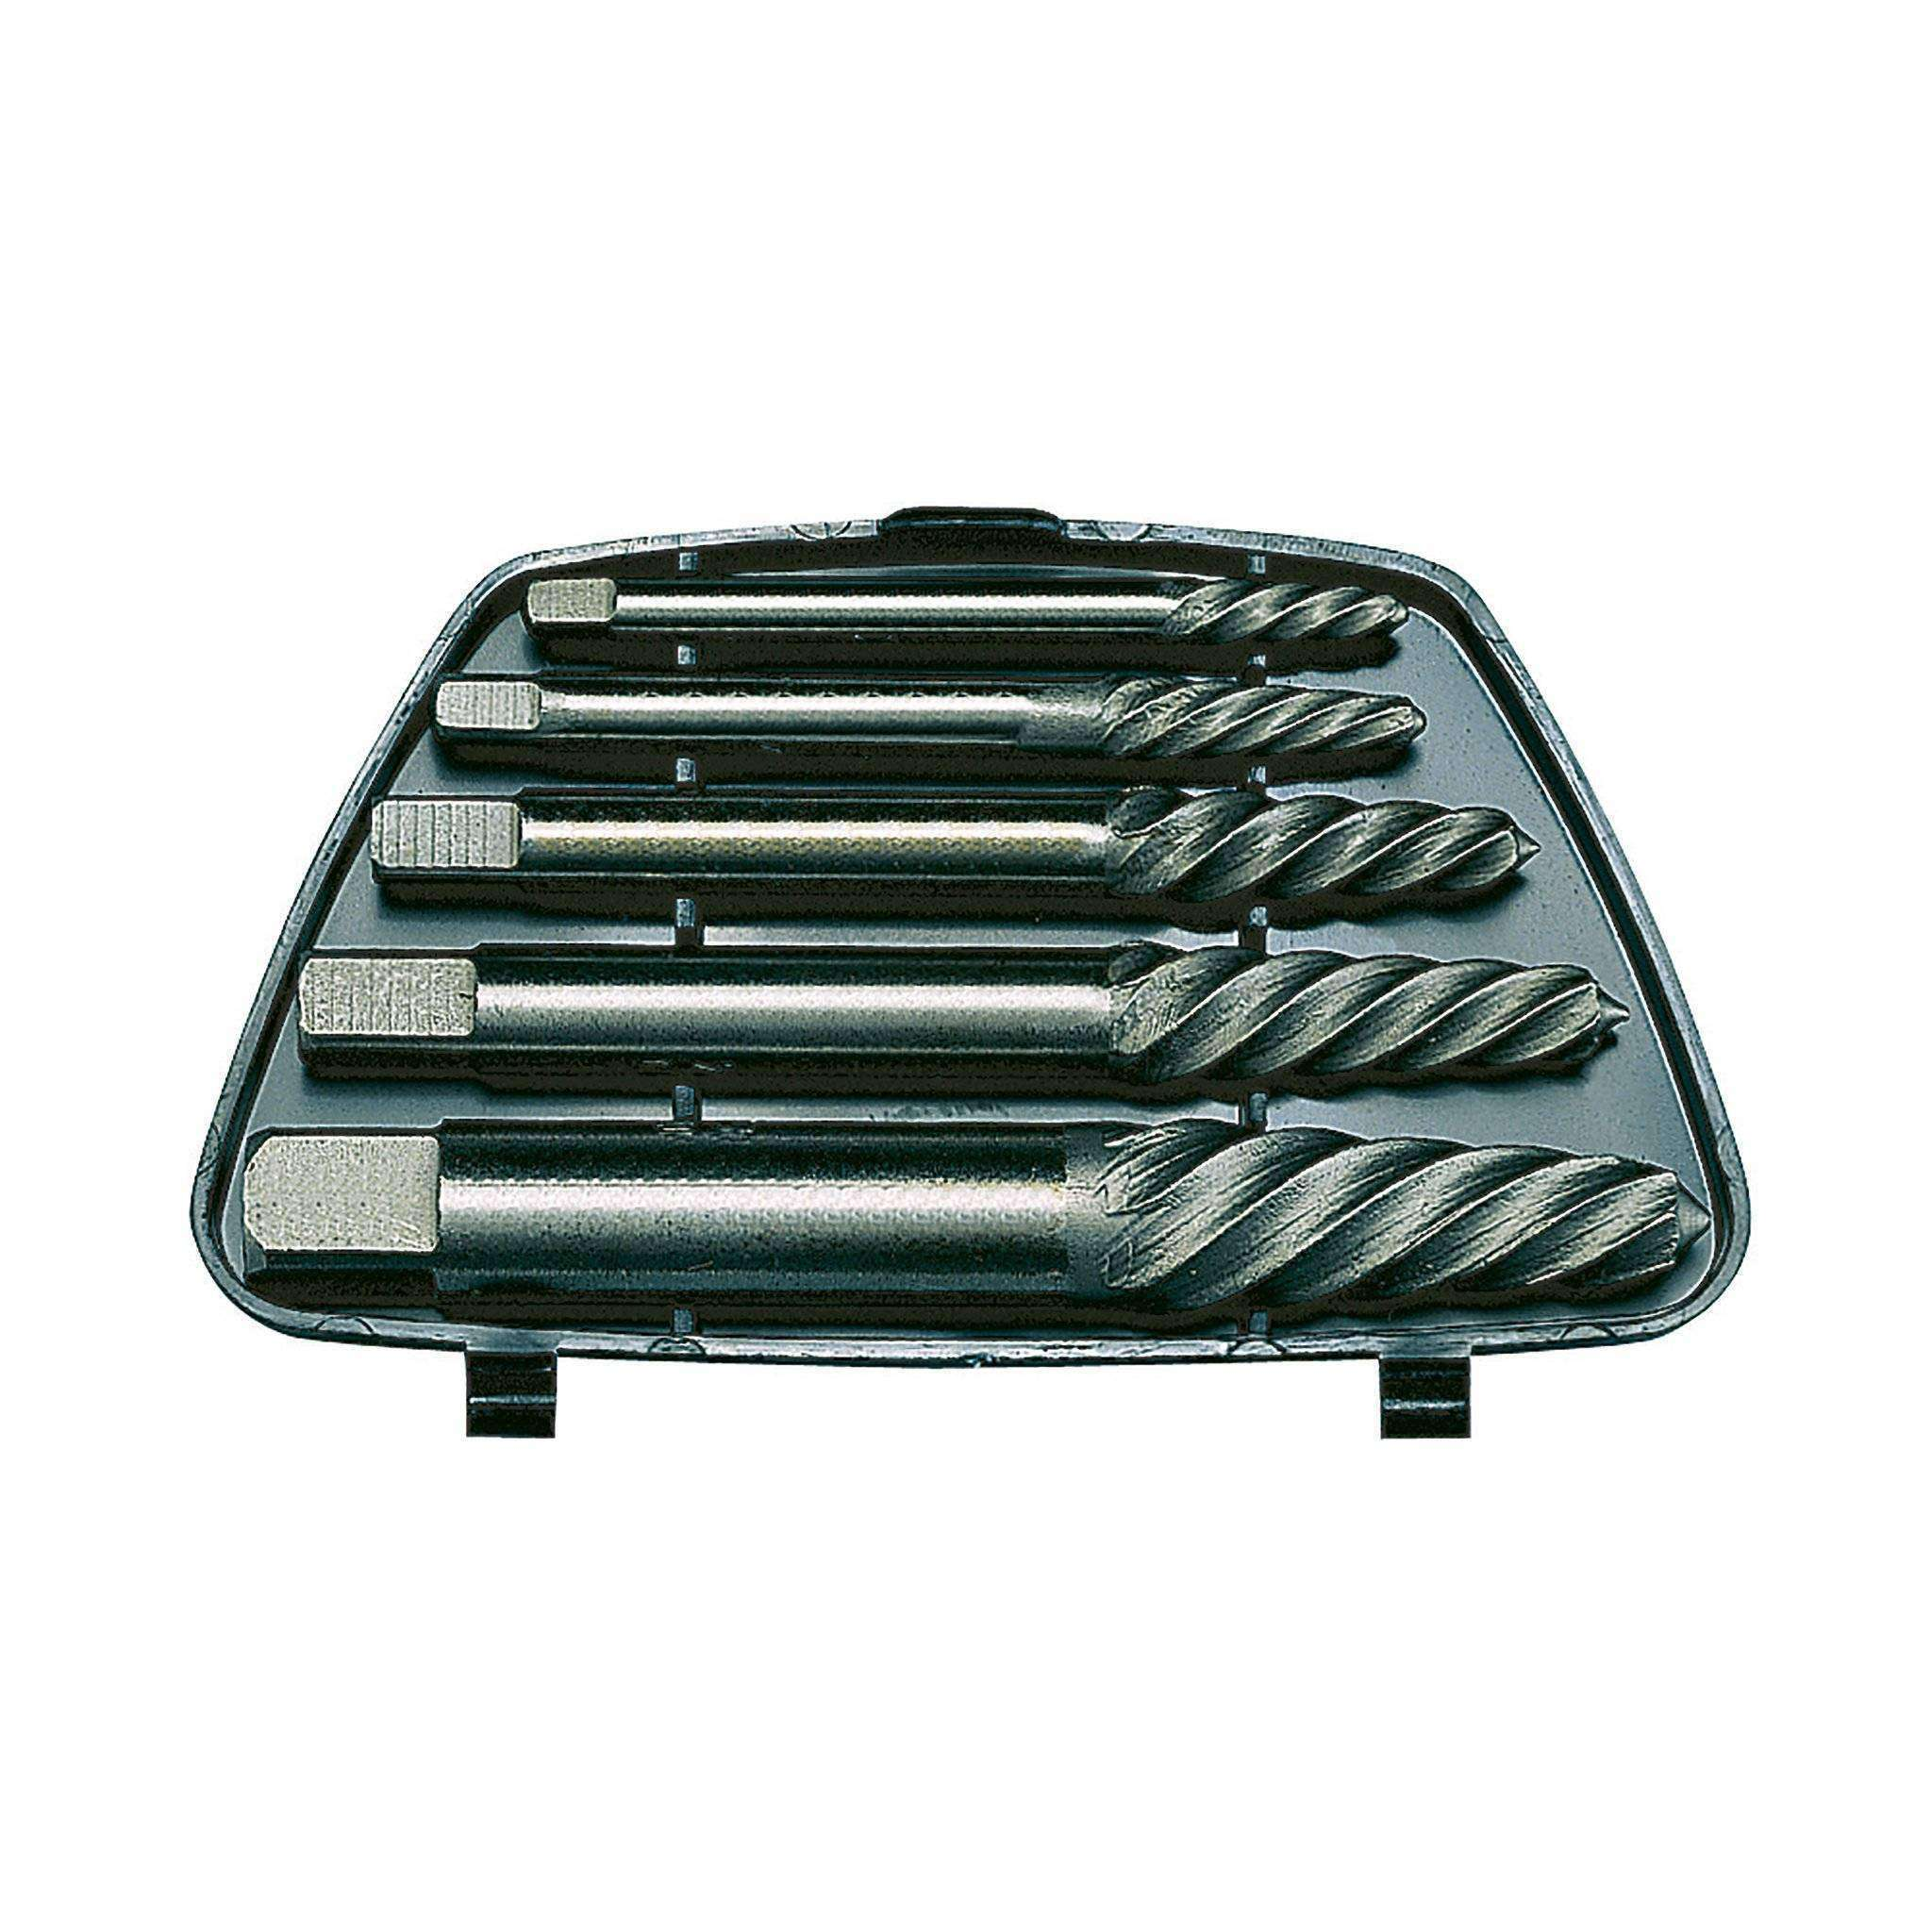 Teng Tools SE05 5 Piece Screw Extractor Set